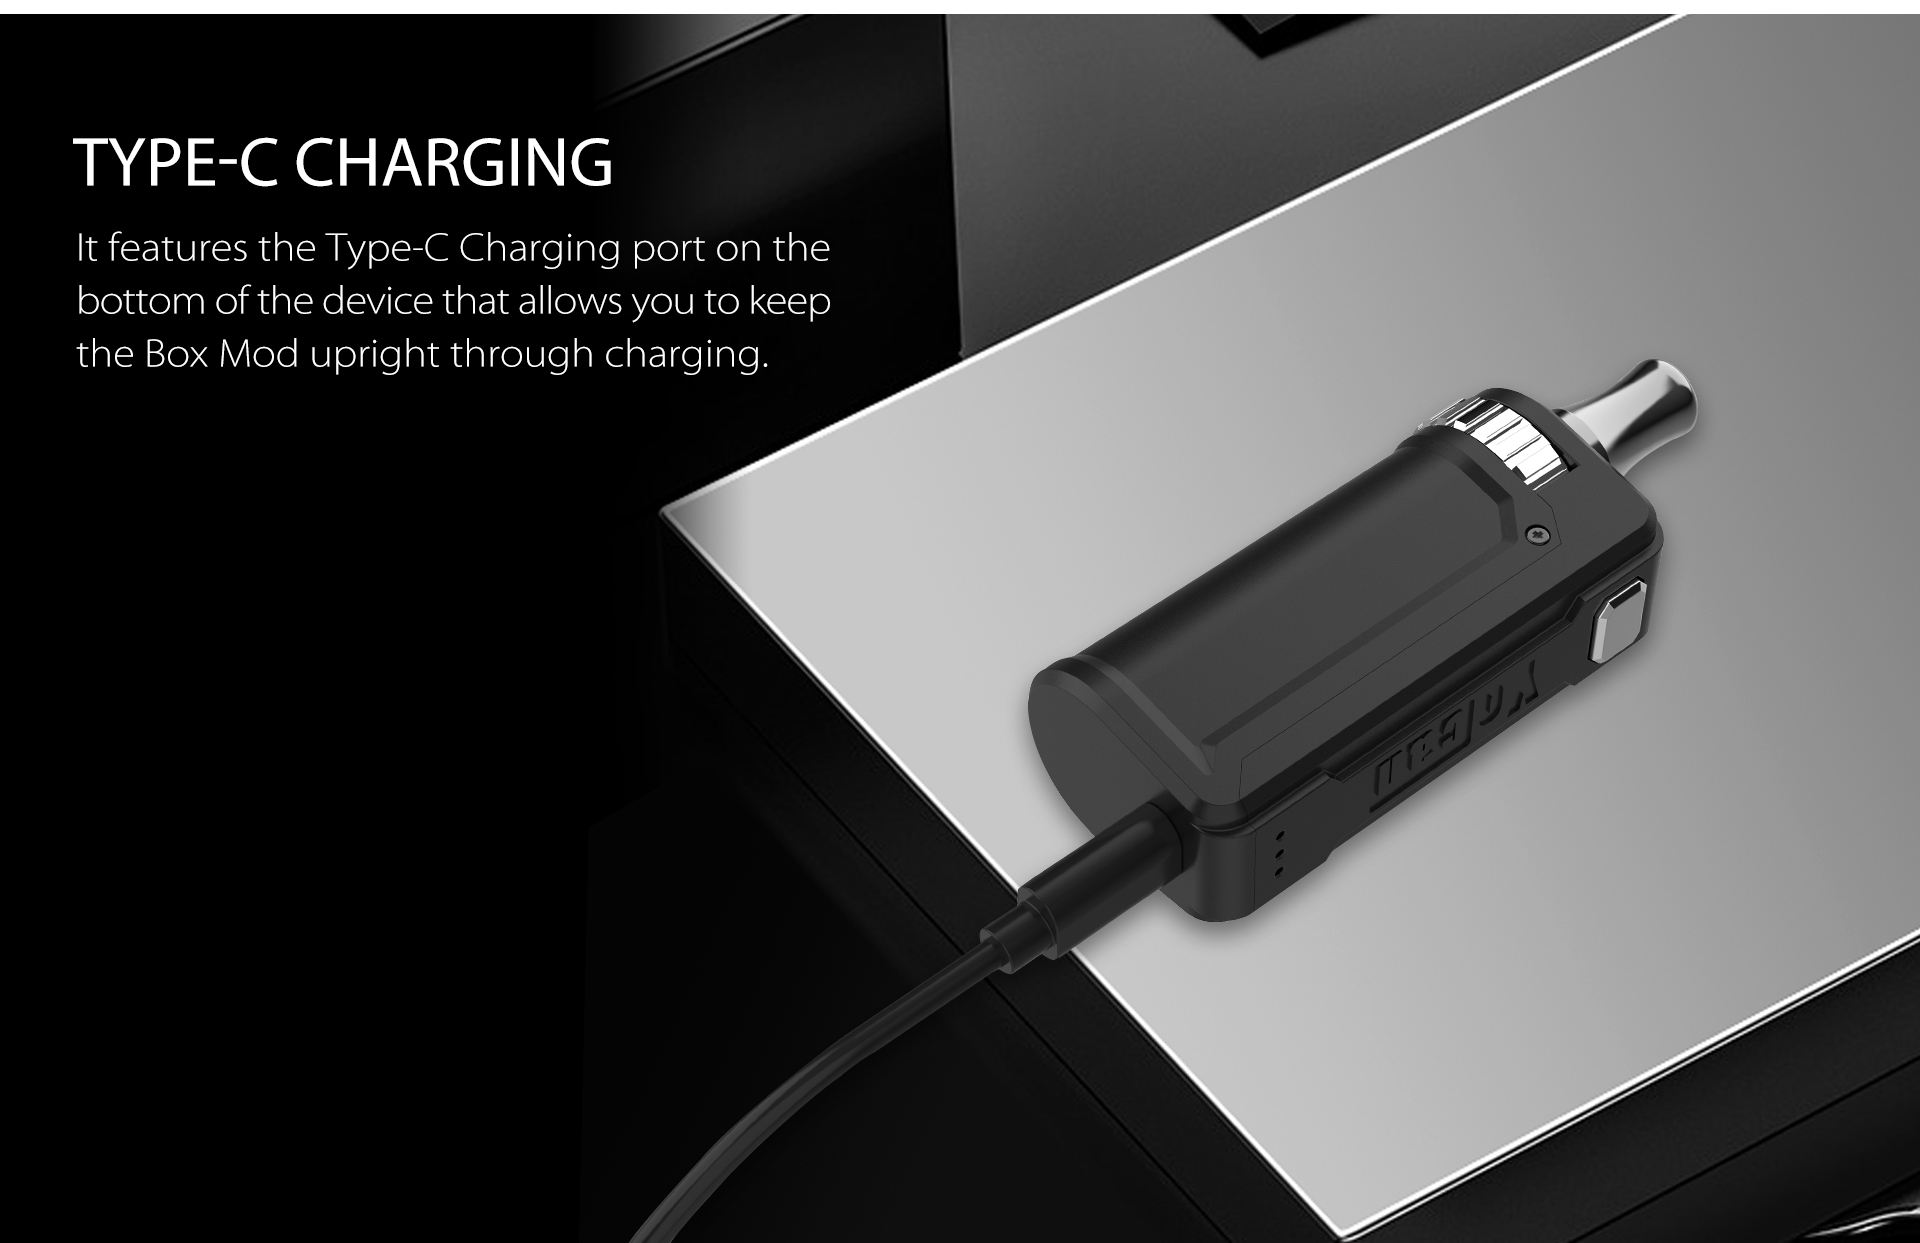 Yocan UNI S Box Mod features teh type-c charging port on the bottom of the device.